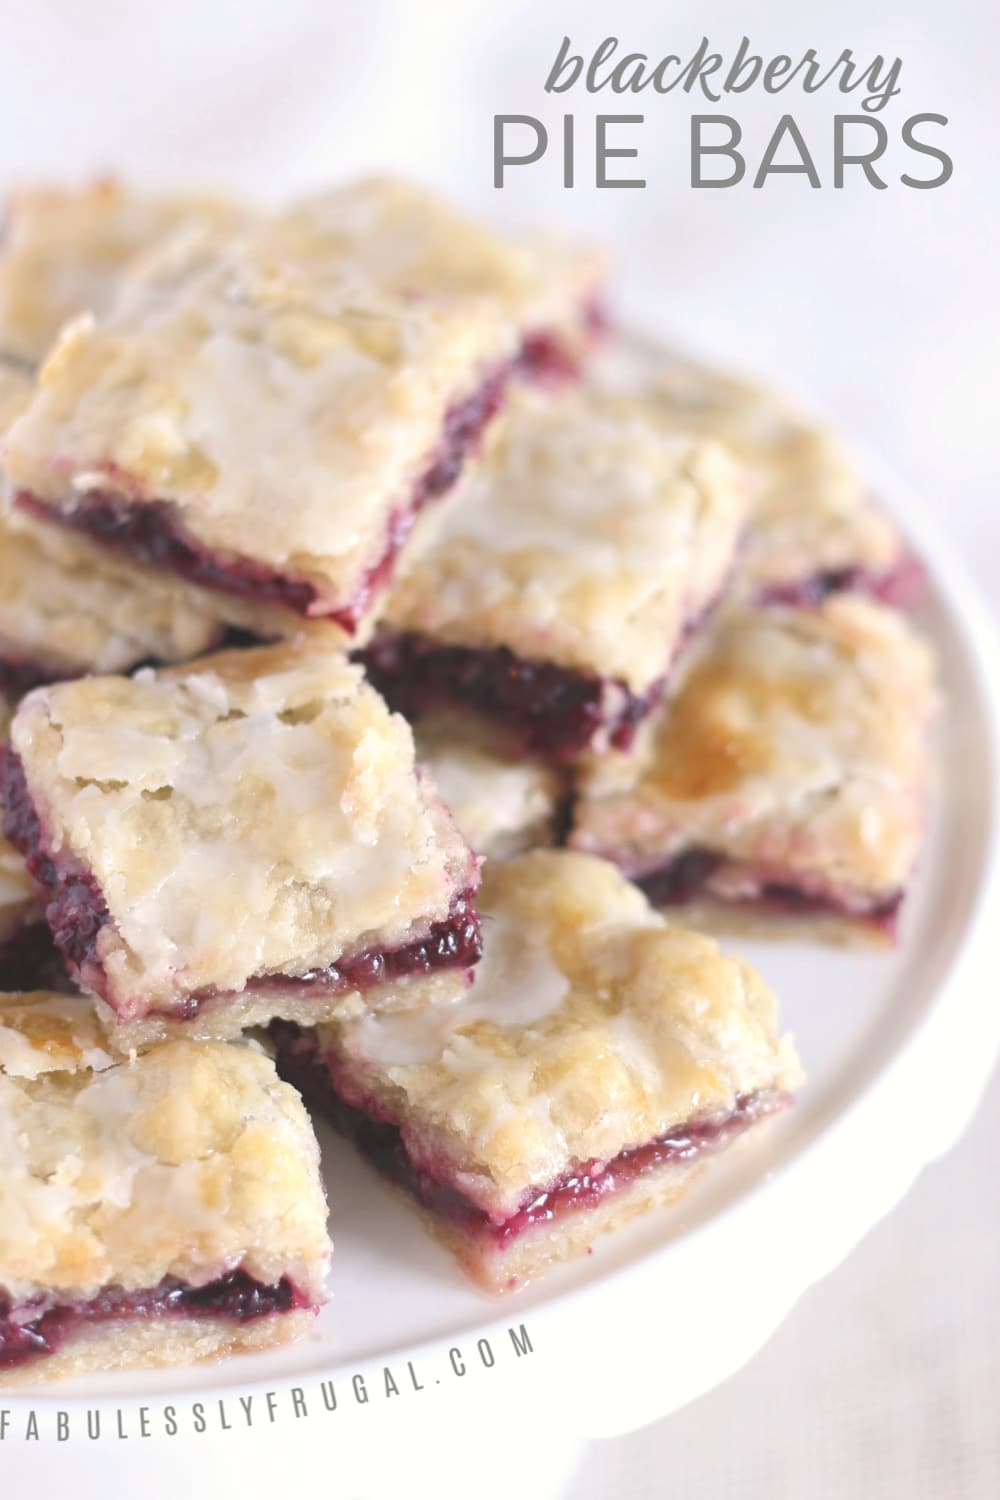 Blackberry pie bars sitting on a plate